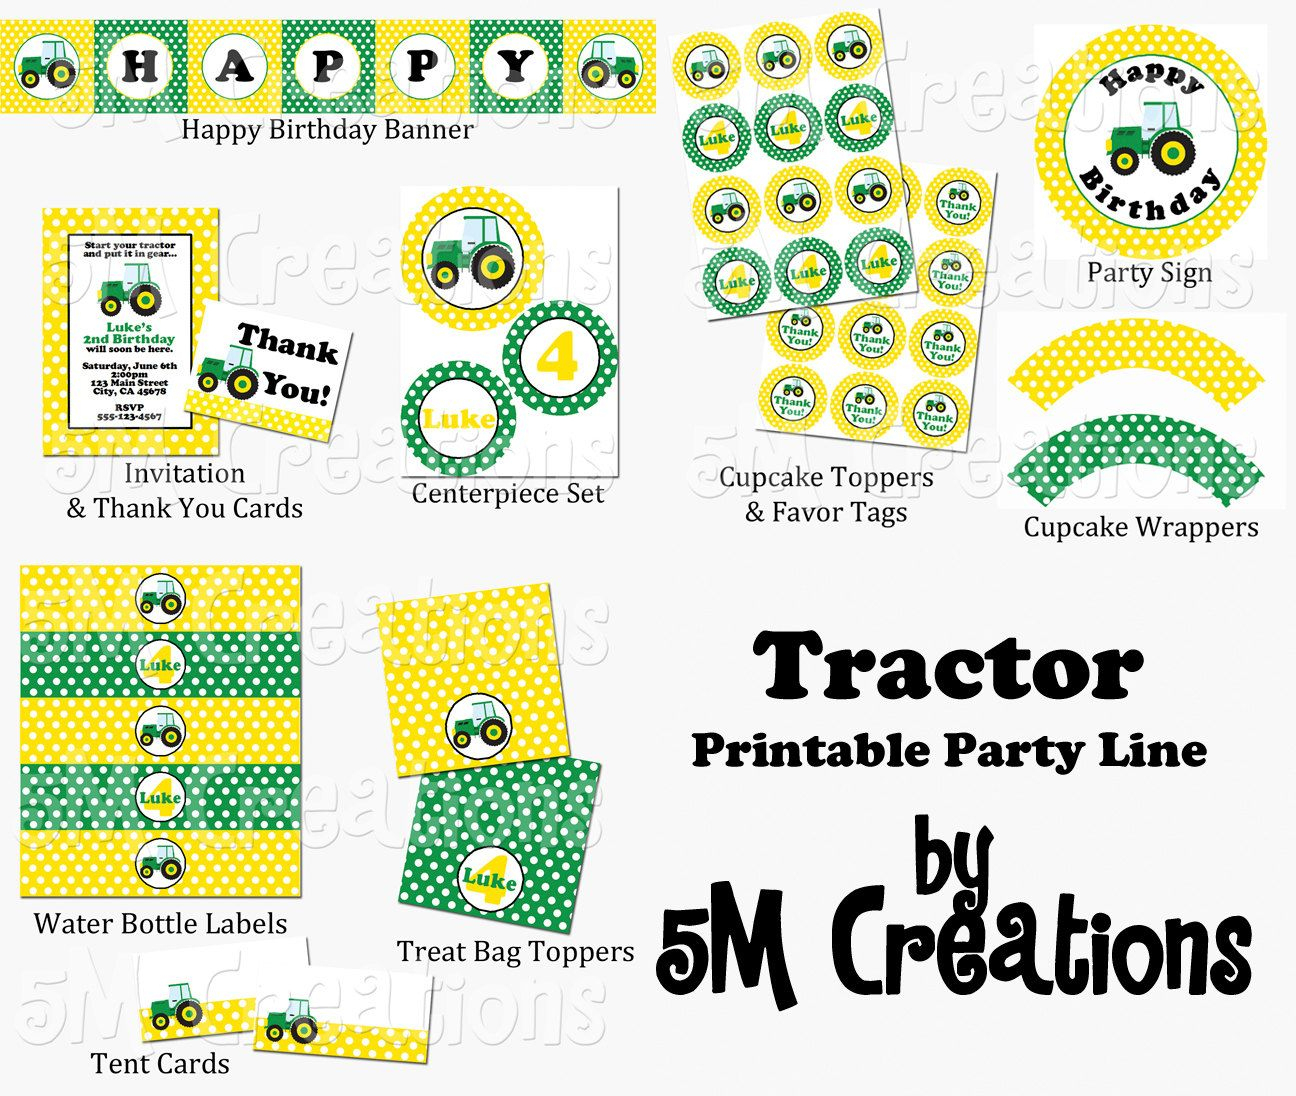 John Deere Party Packages | Tractor Party Package - John Deere - Free Printable John Deere Food Labels